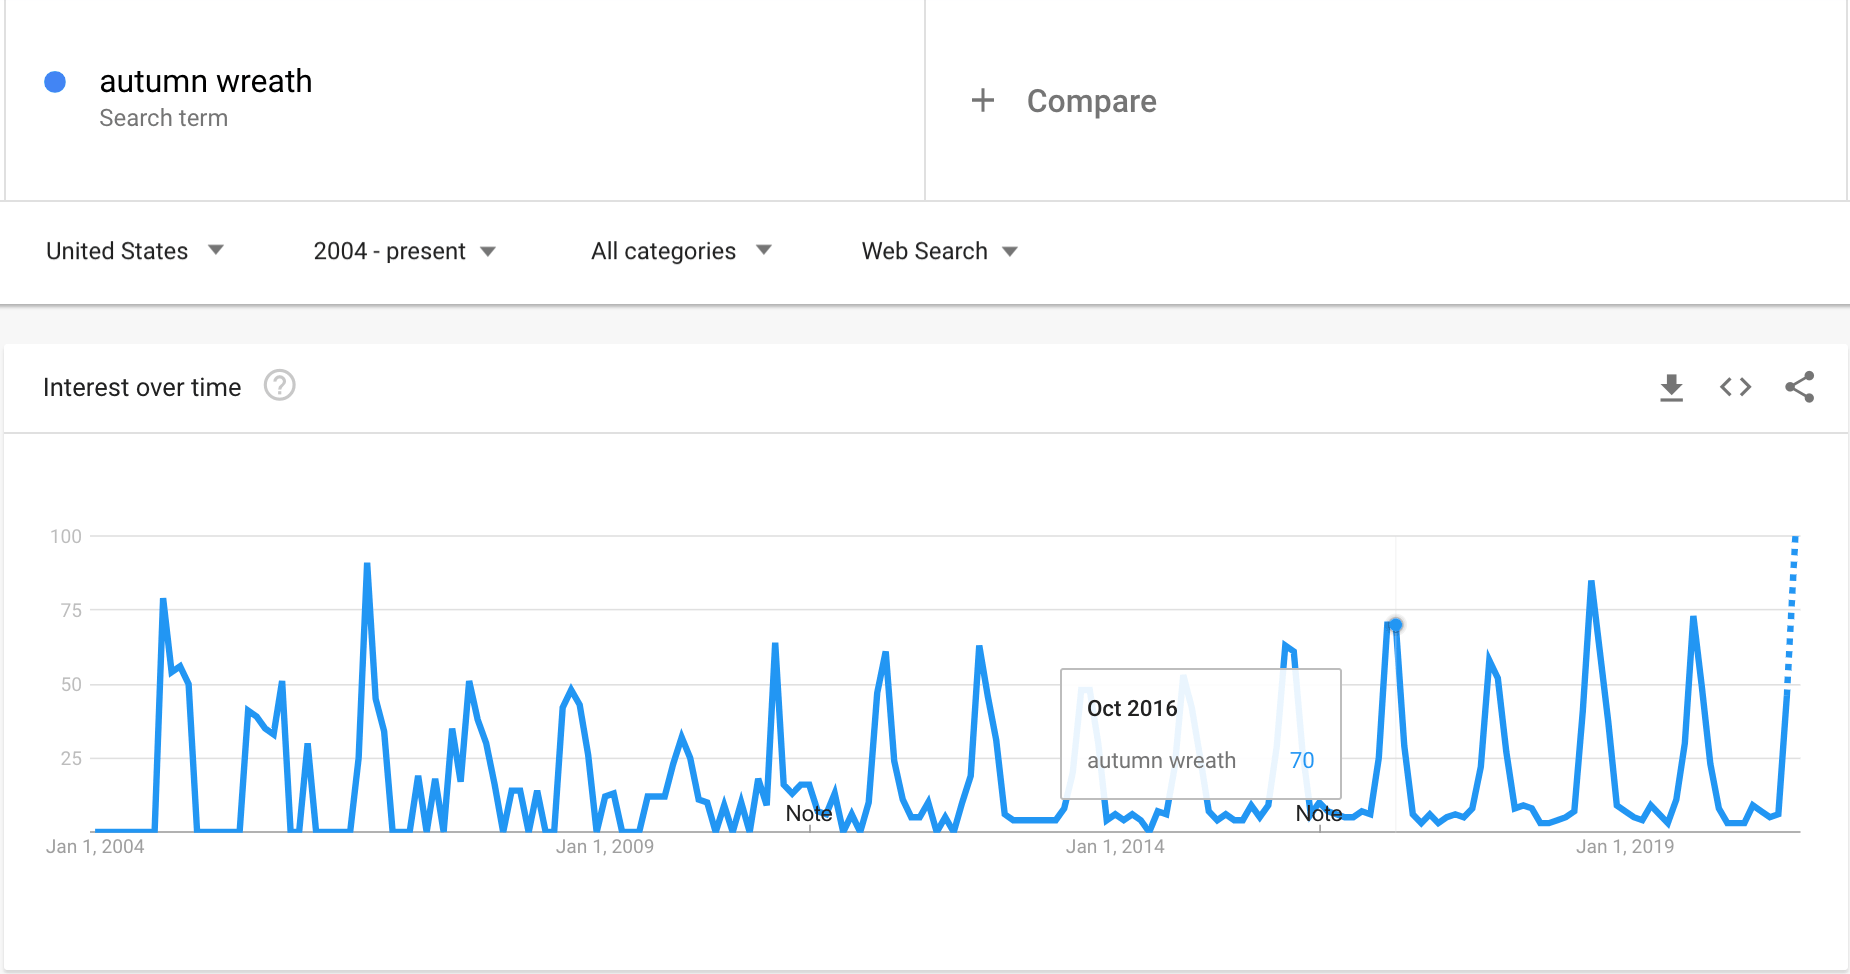 Google Trends graph showing the interest in autumn wreaths